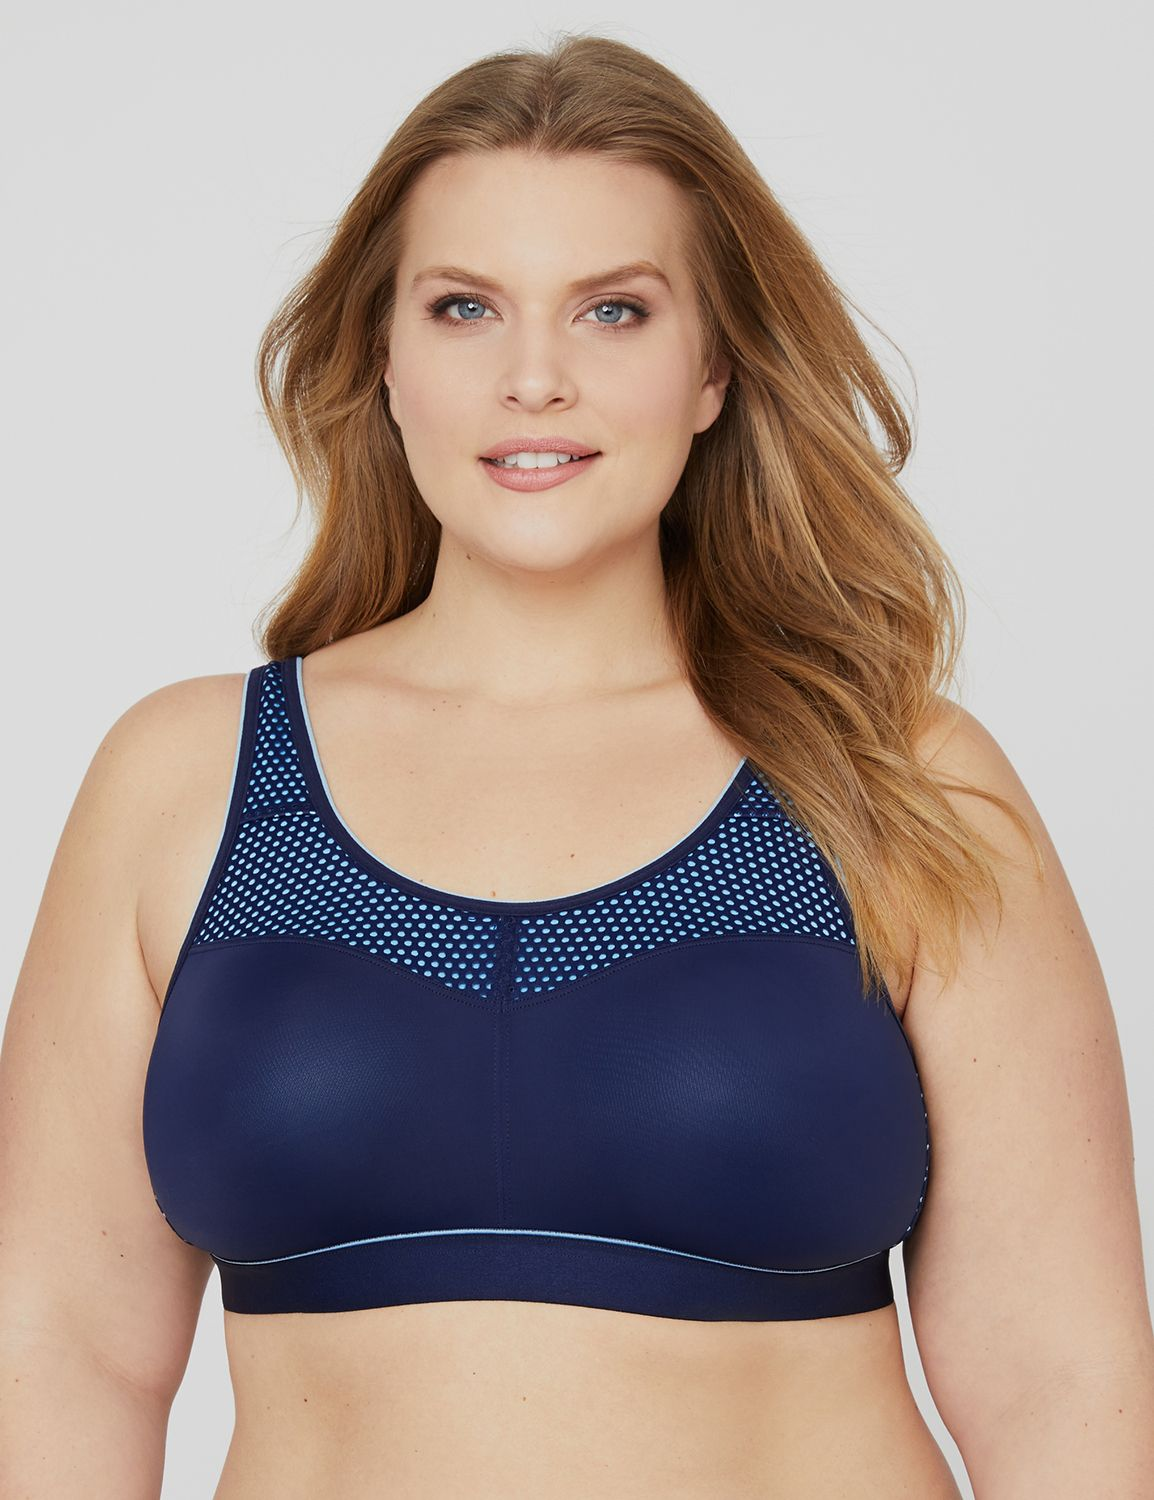 Exhale Active Bra Strappy UW Sport Bra MP-300095083